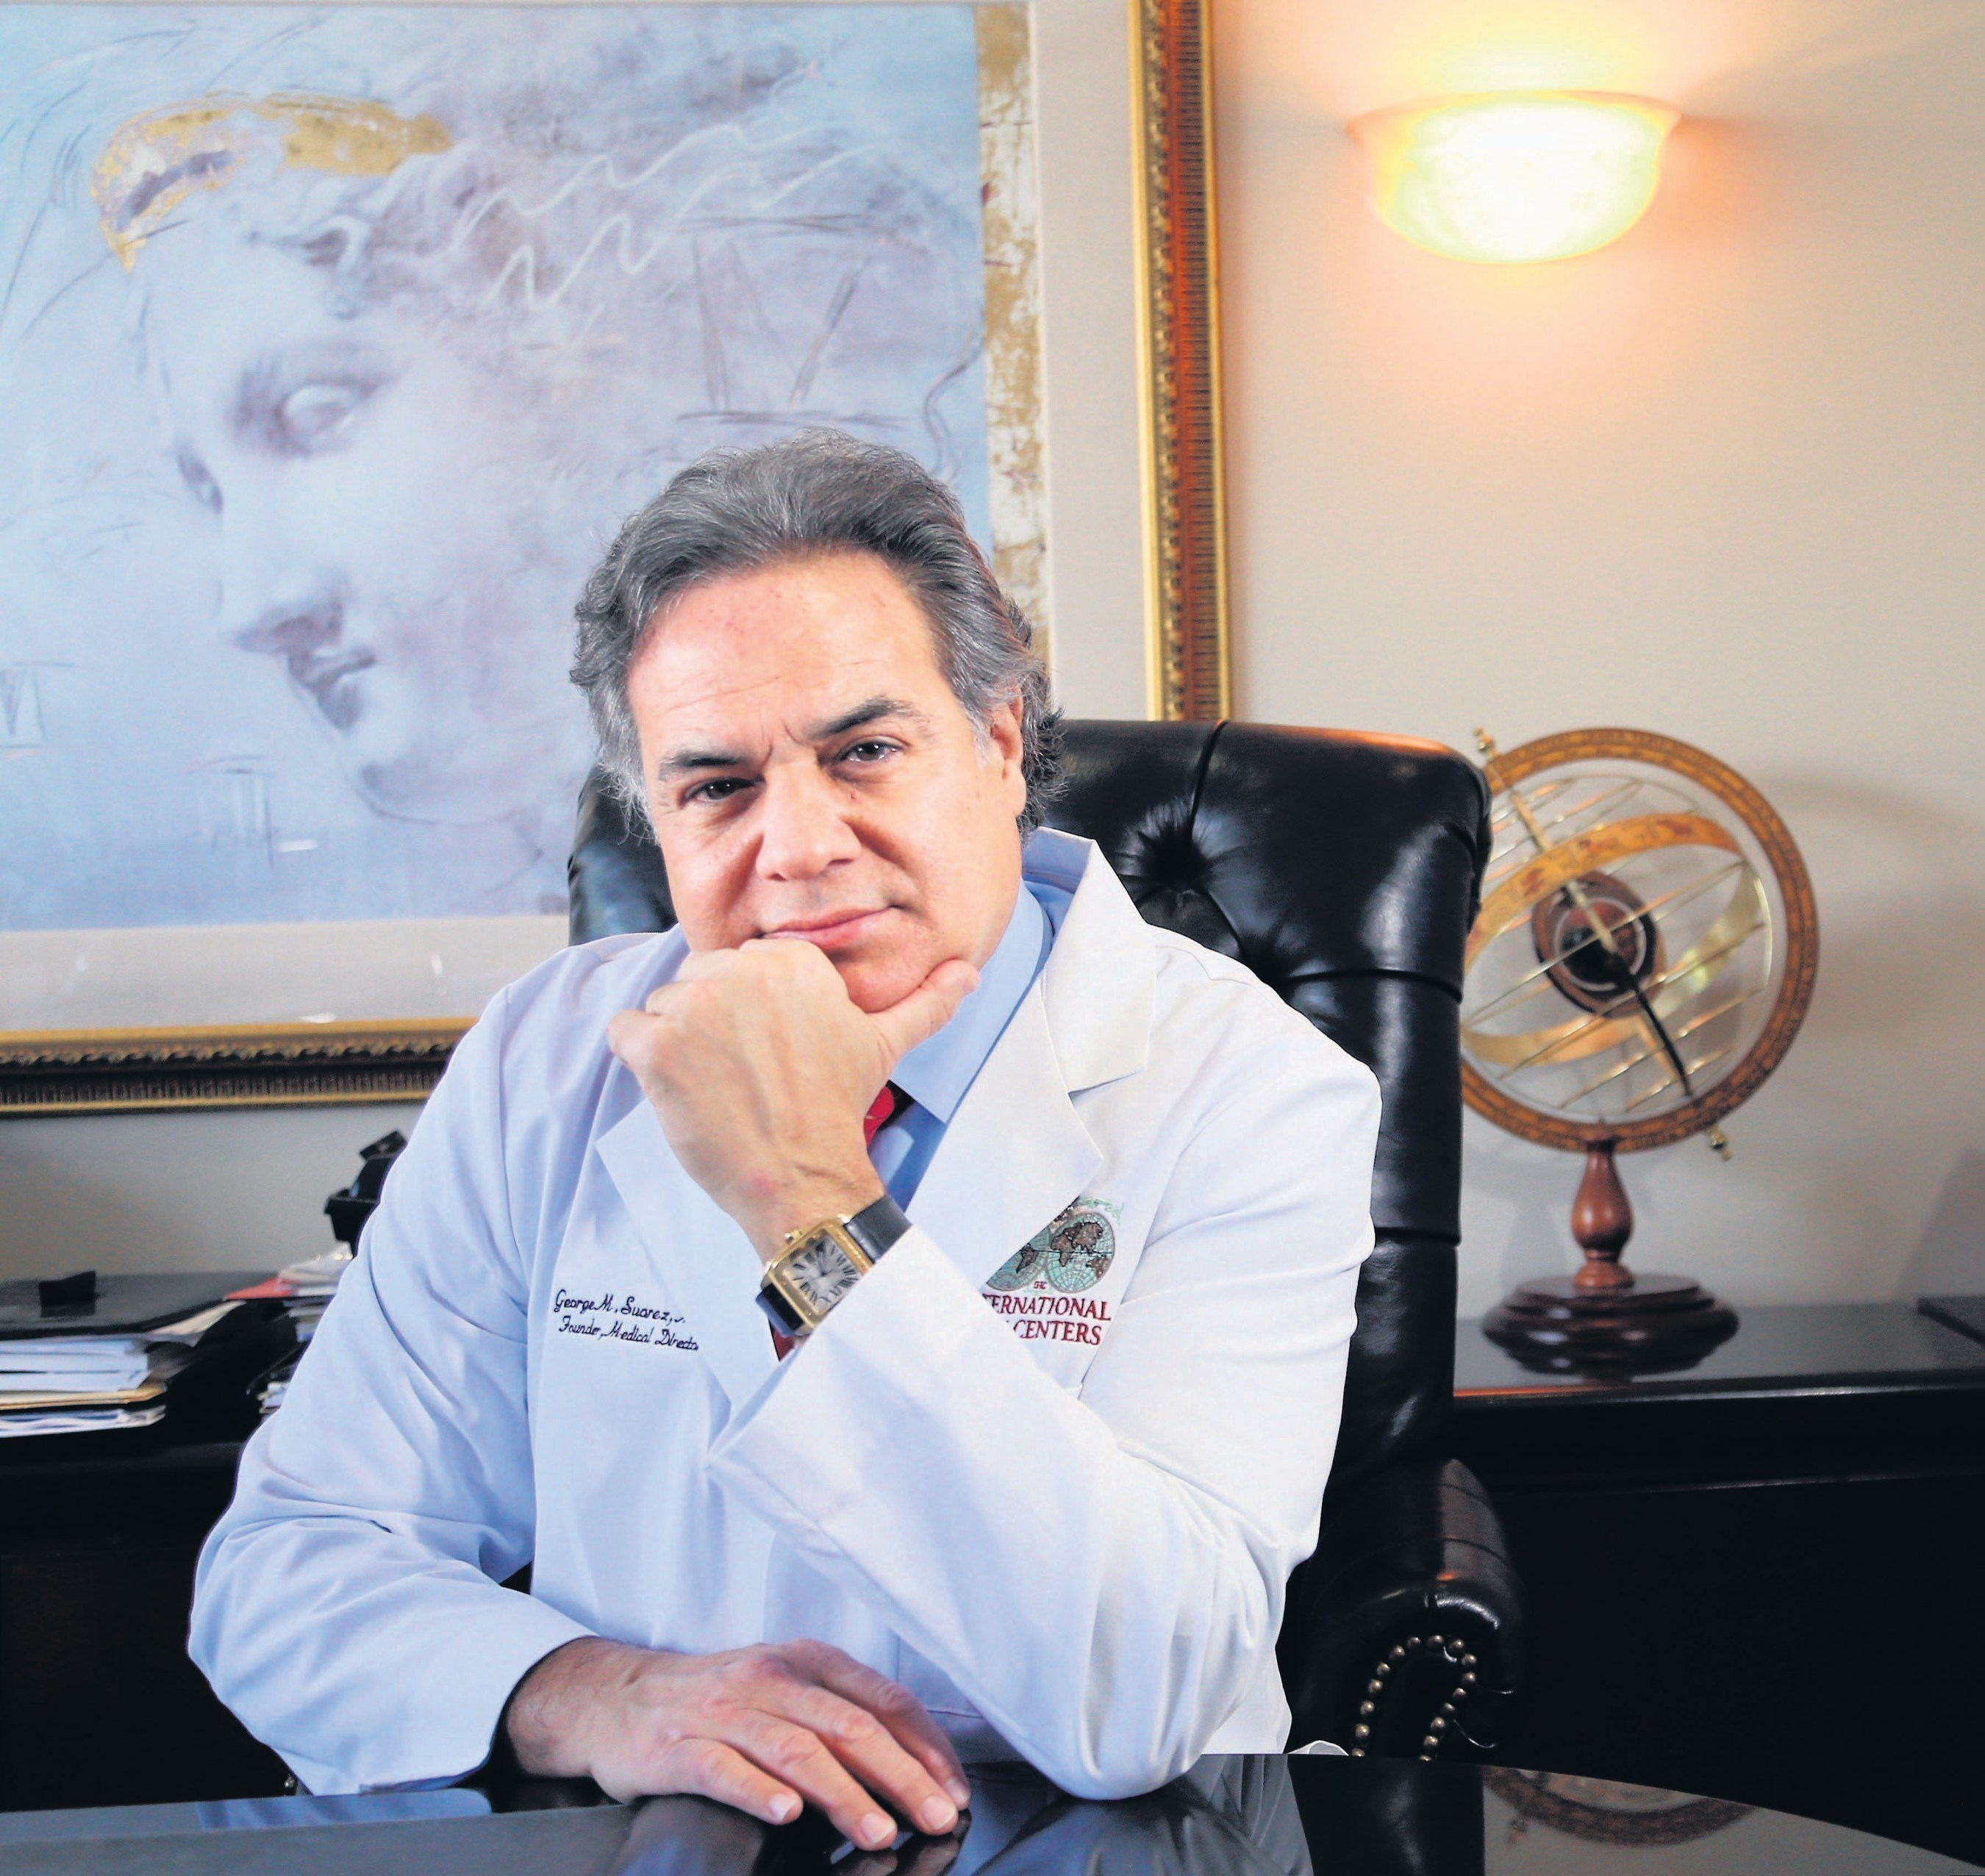 Dr. George Suarez is the world-leading expert in HIFU (high intensity focused ultrasound) for prostate cancer.